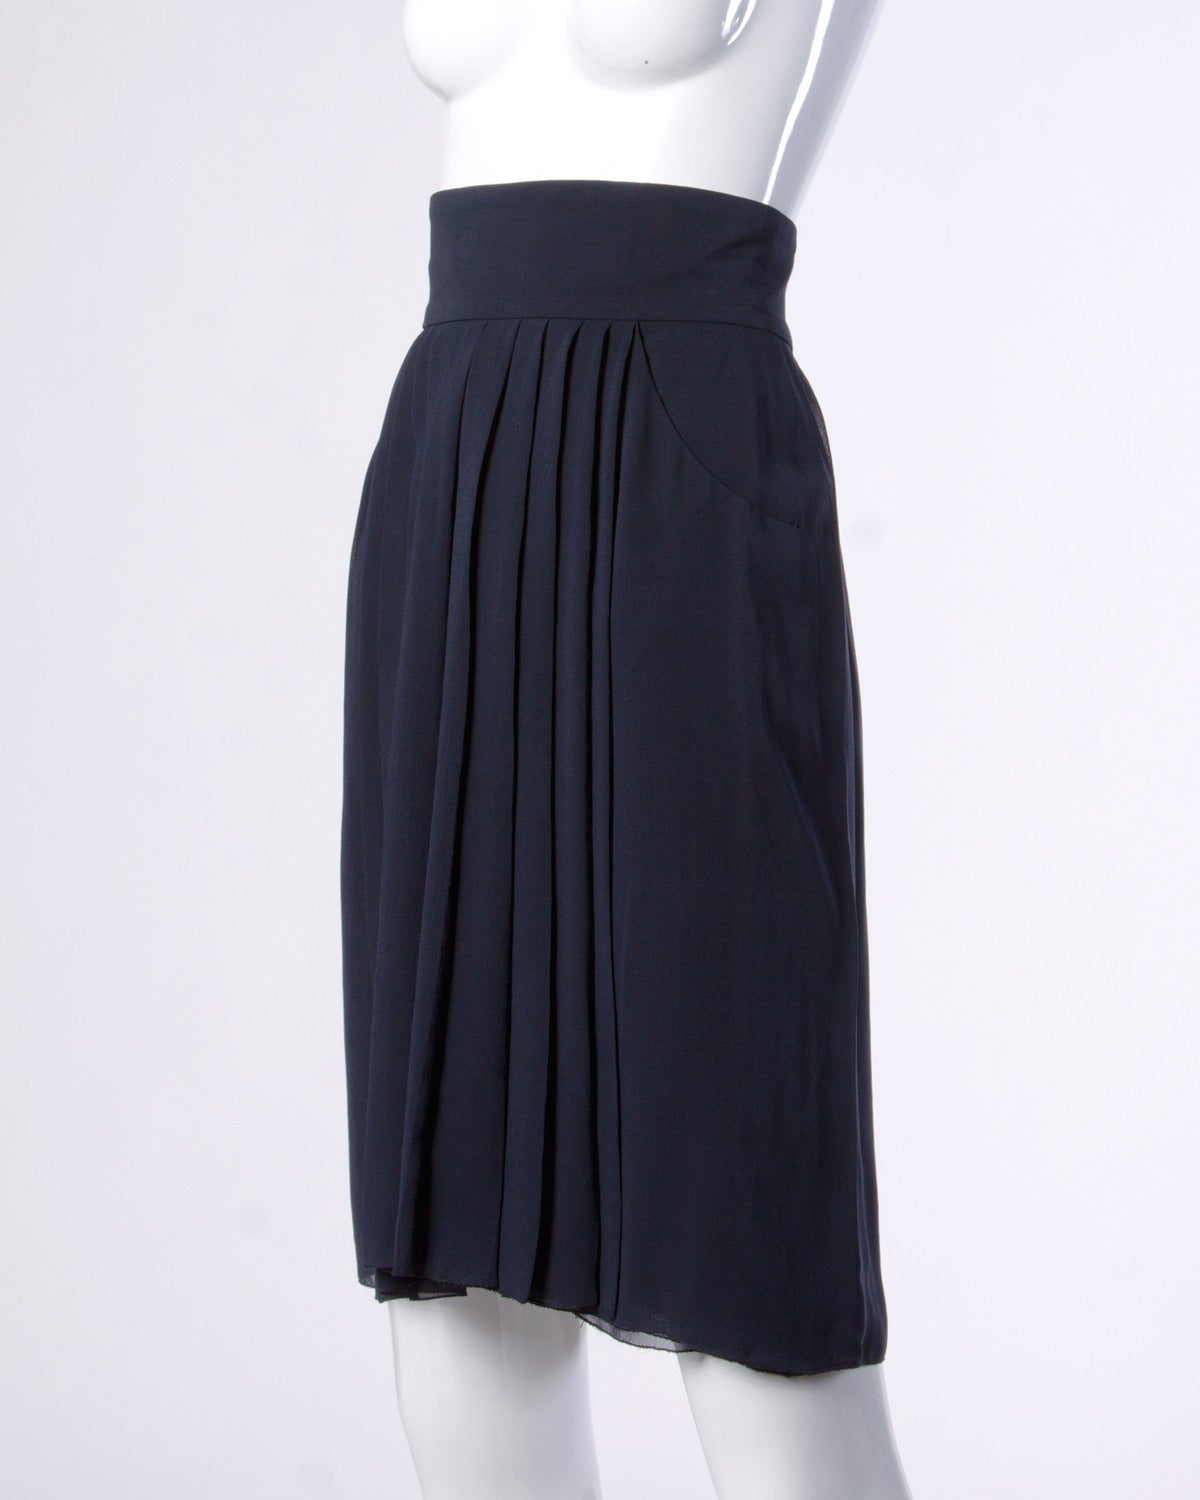 Chanel Vintage Navy Blue Pleated Silk Chiffon Skirt 2